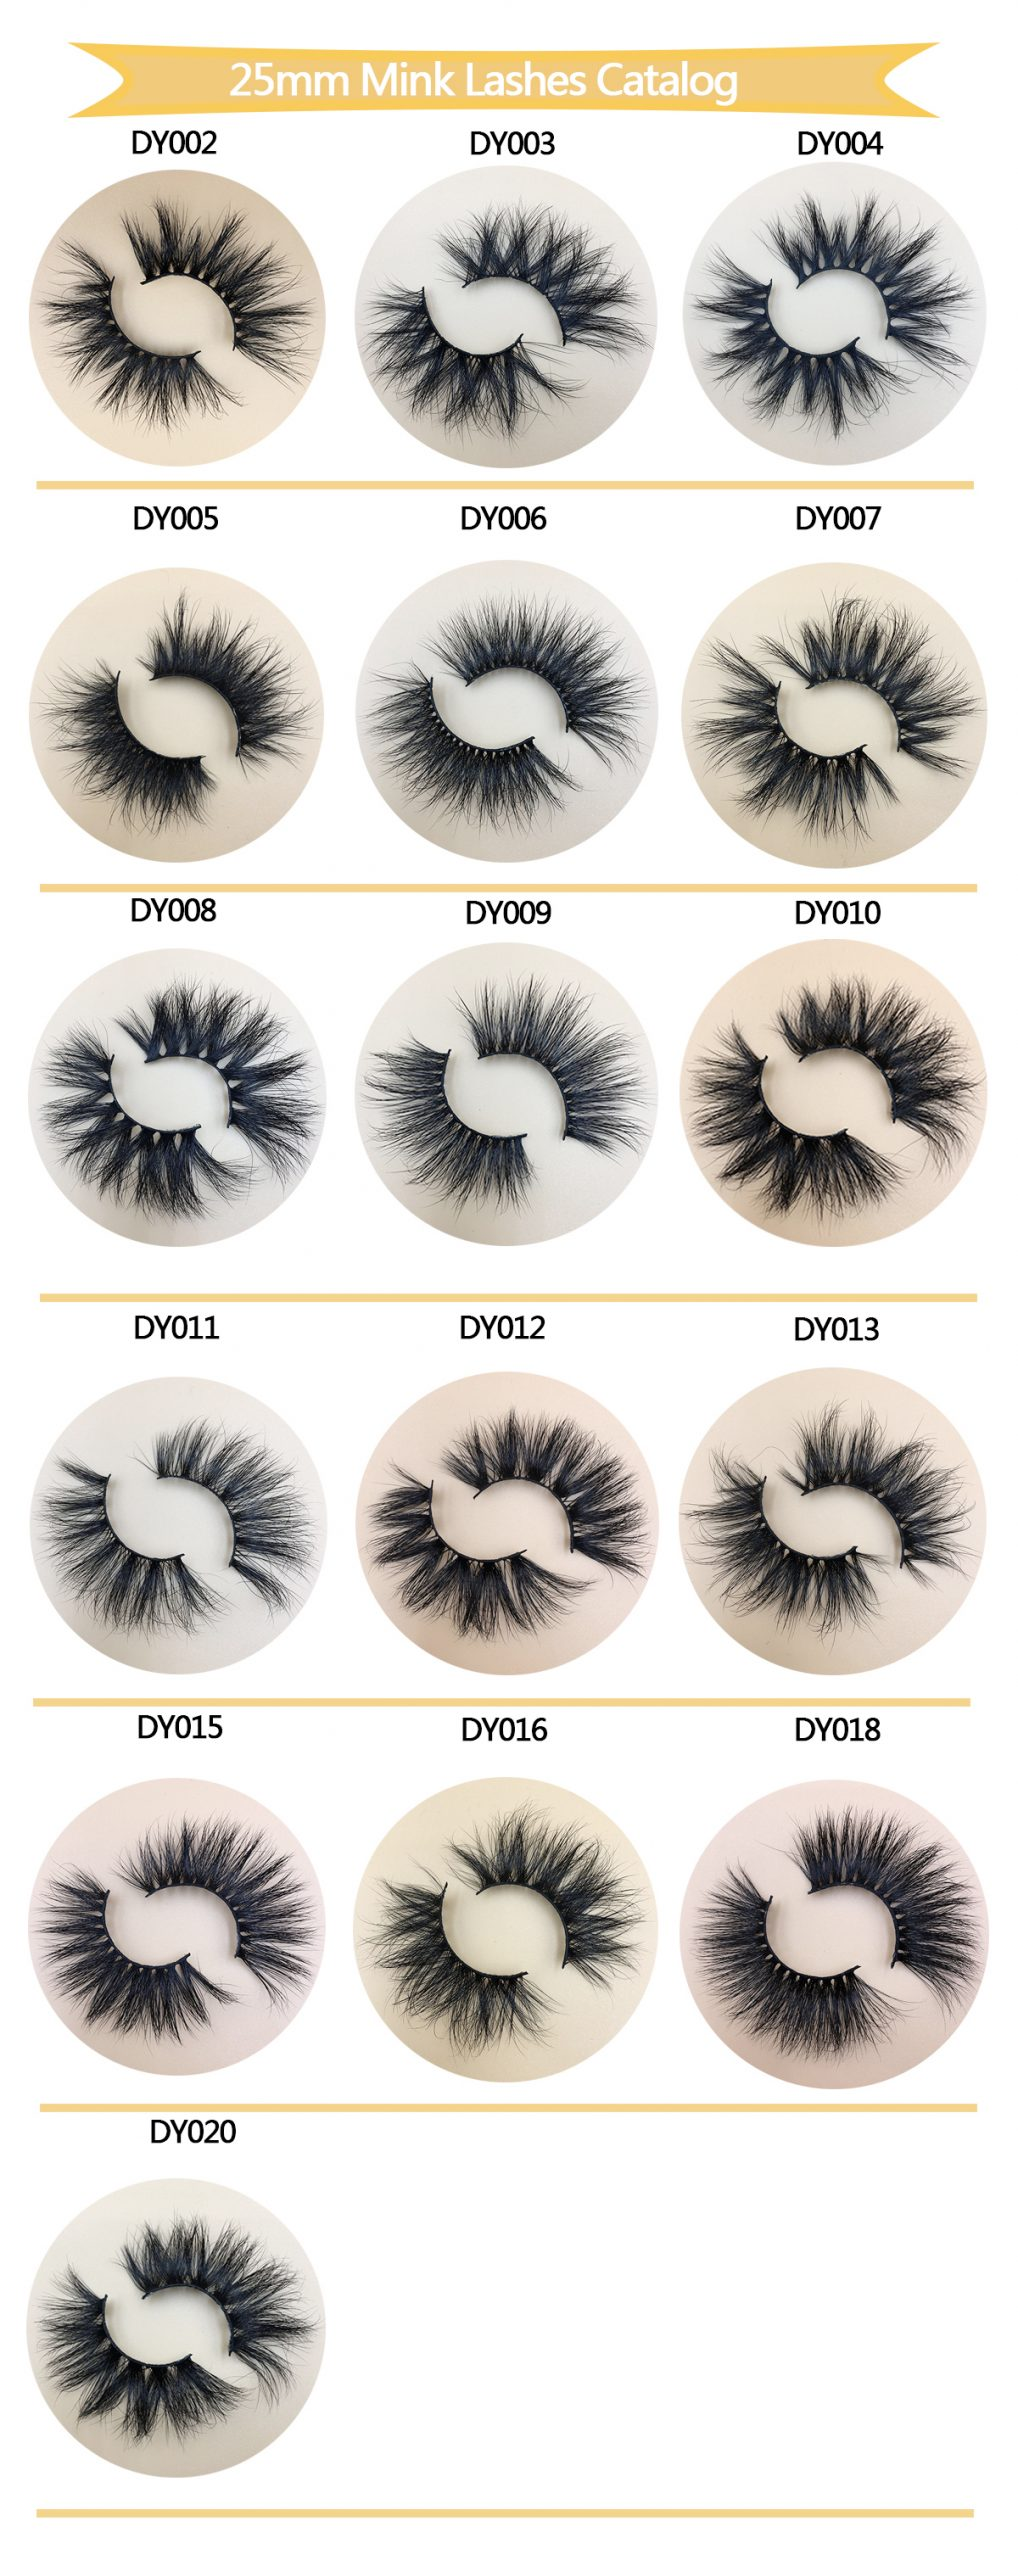 DY Series 25MM Mink Lashes